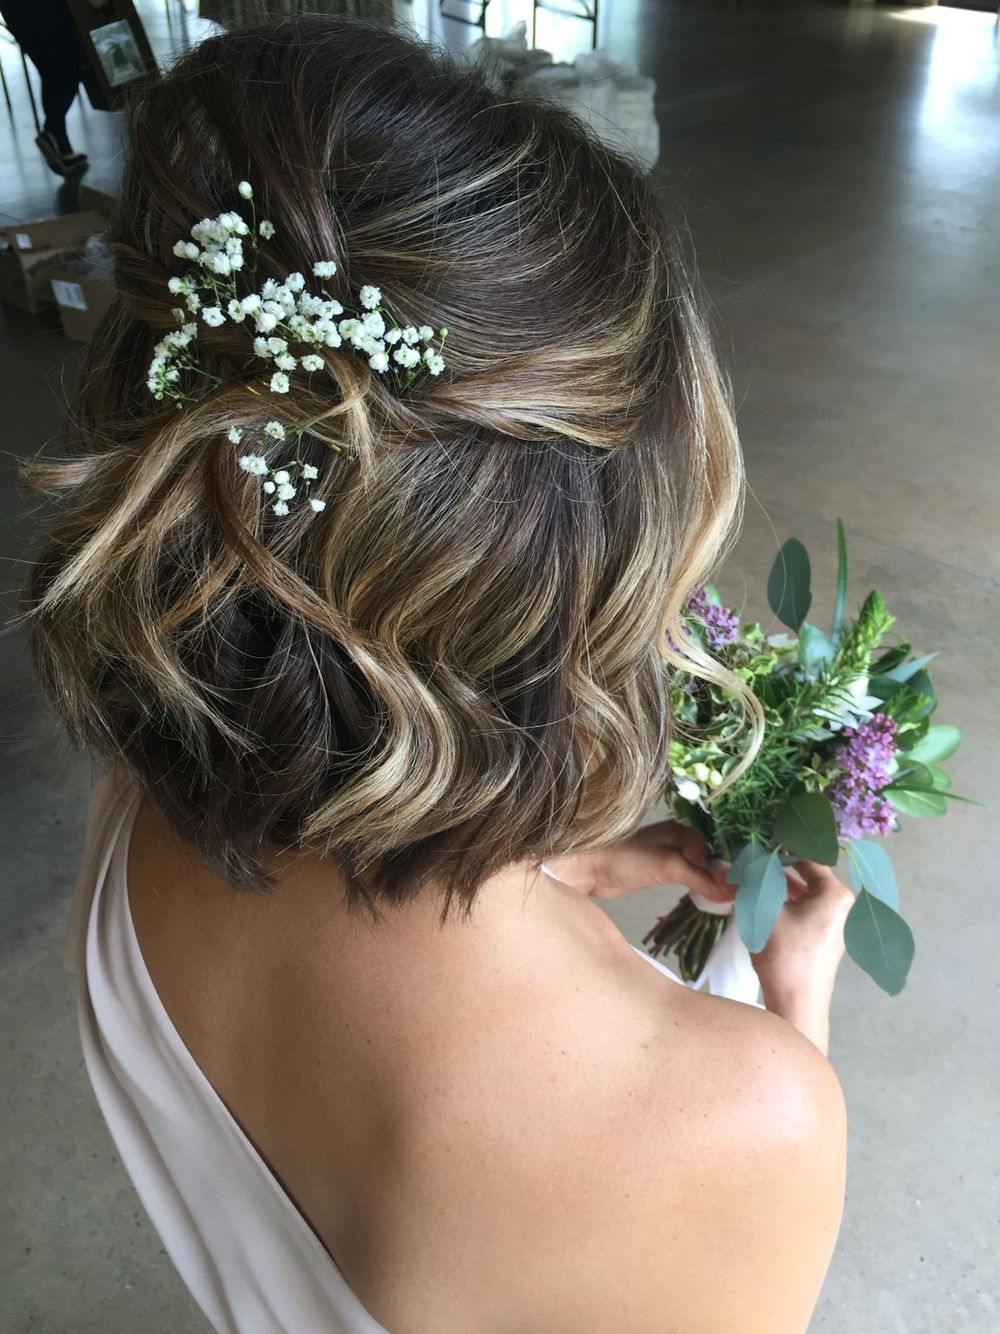 Pinlyss Laurens On Short Hairstyles   Pinterest   Wedding Within Hairstyle For Short Hair For Wedding (View 7 of 25)